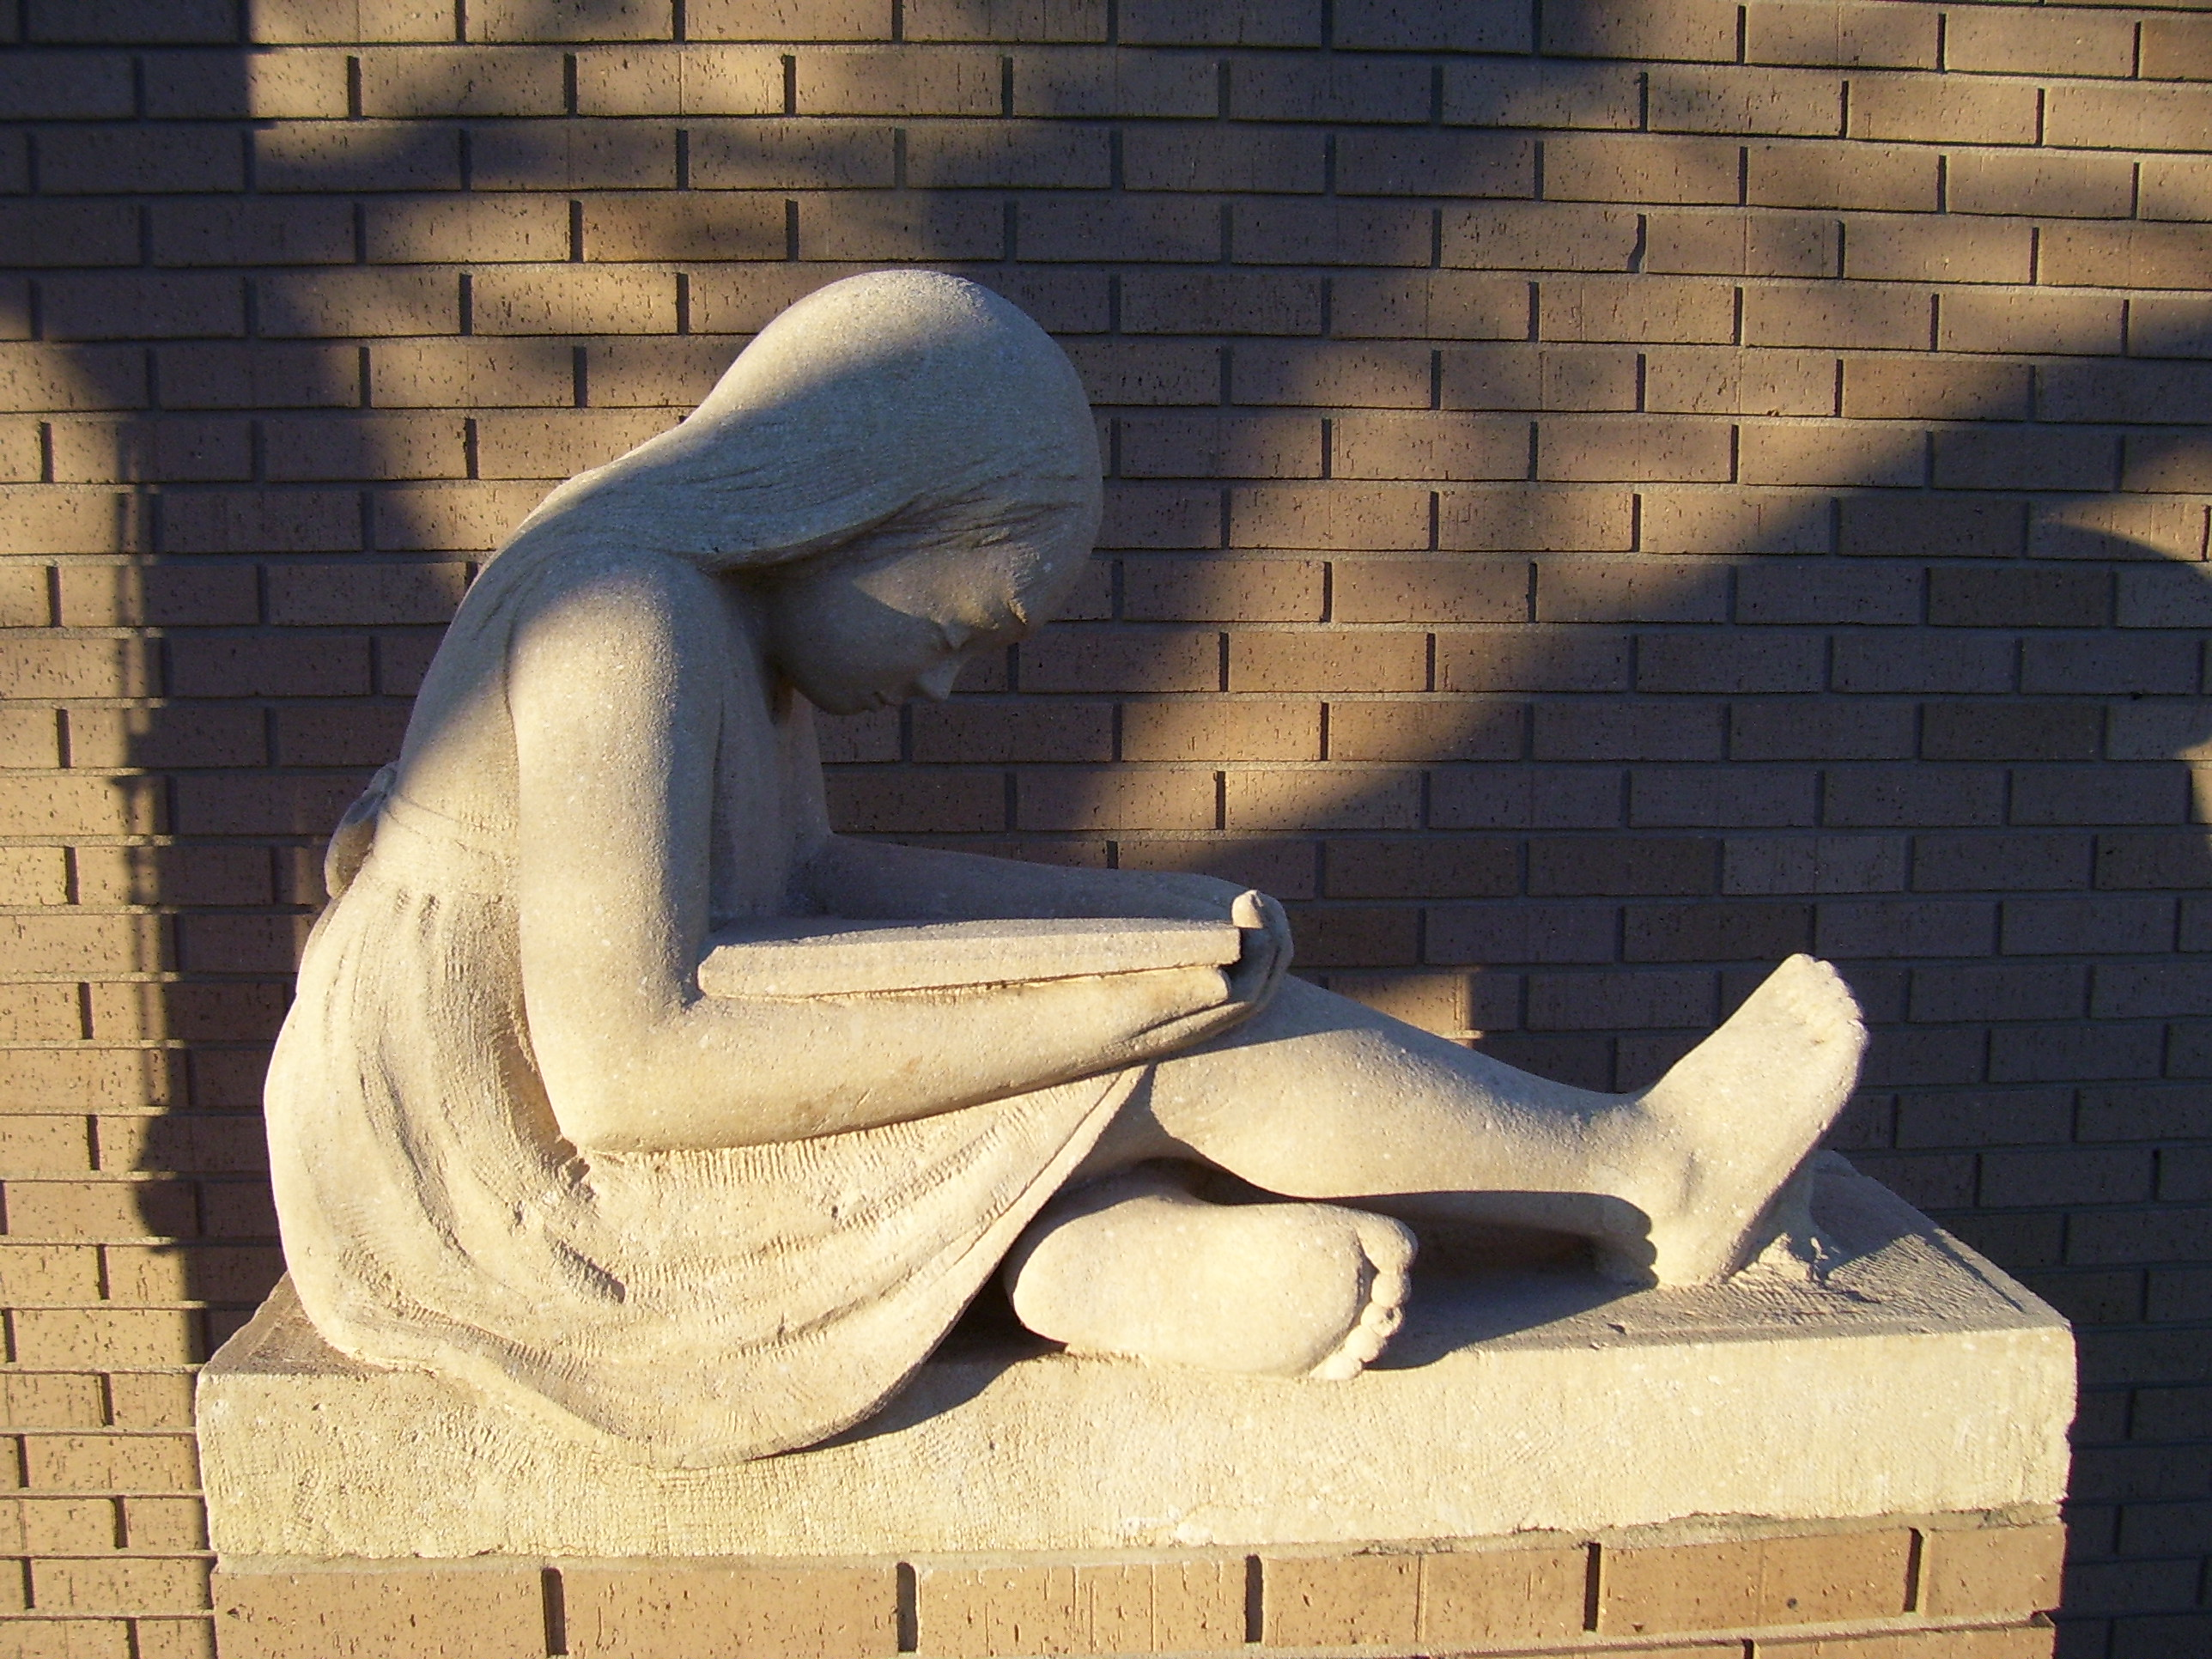 Plainville Library sculpture